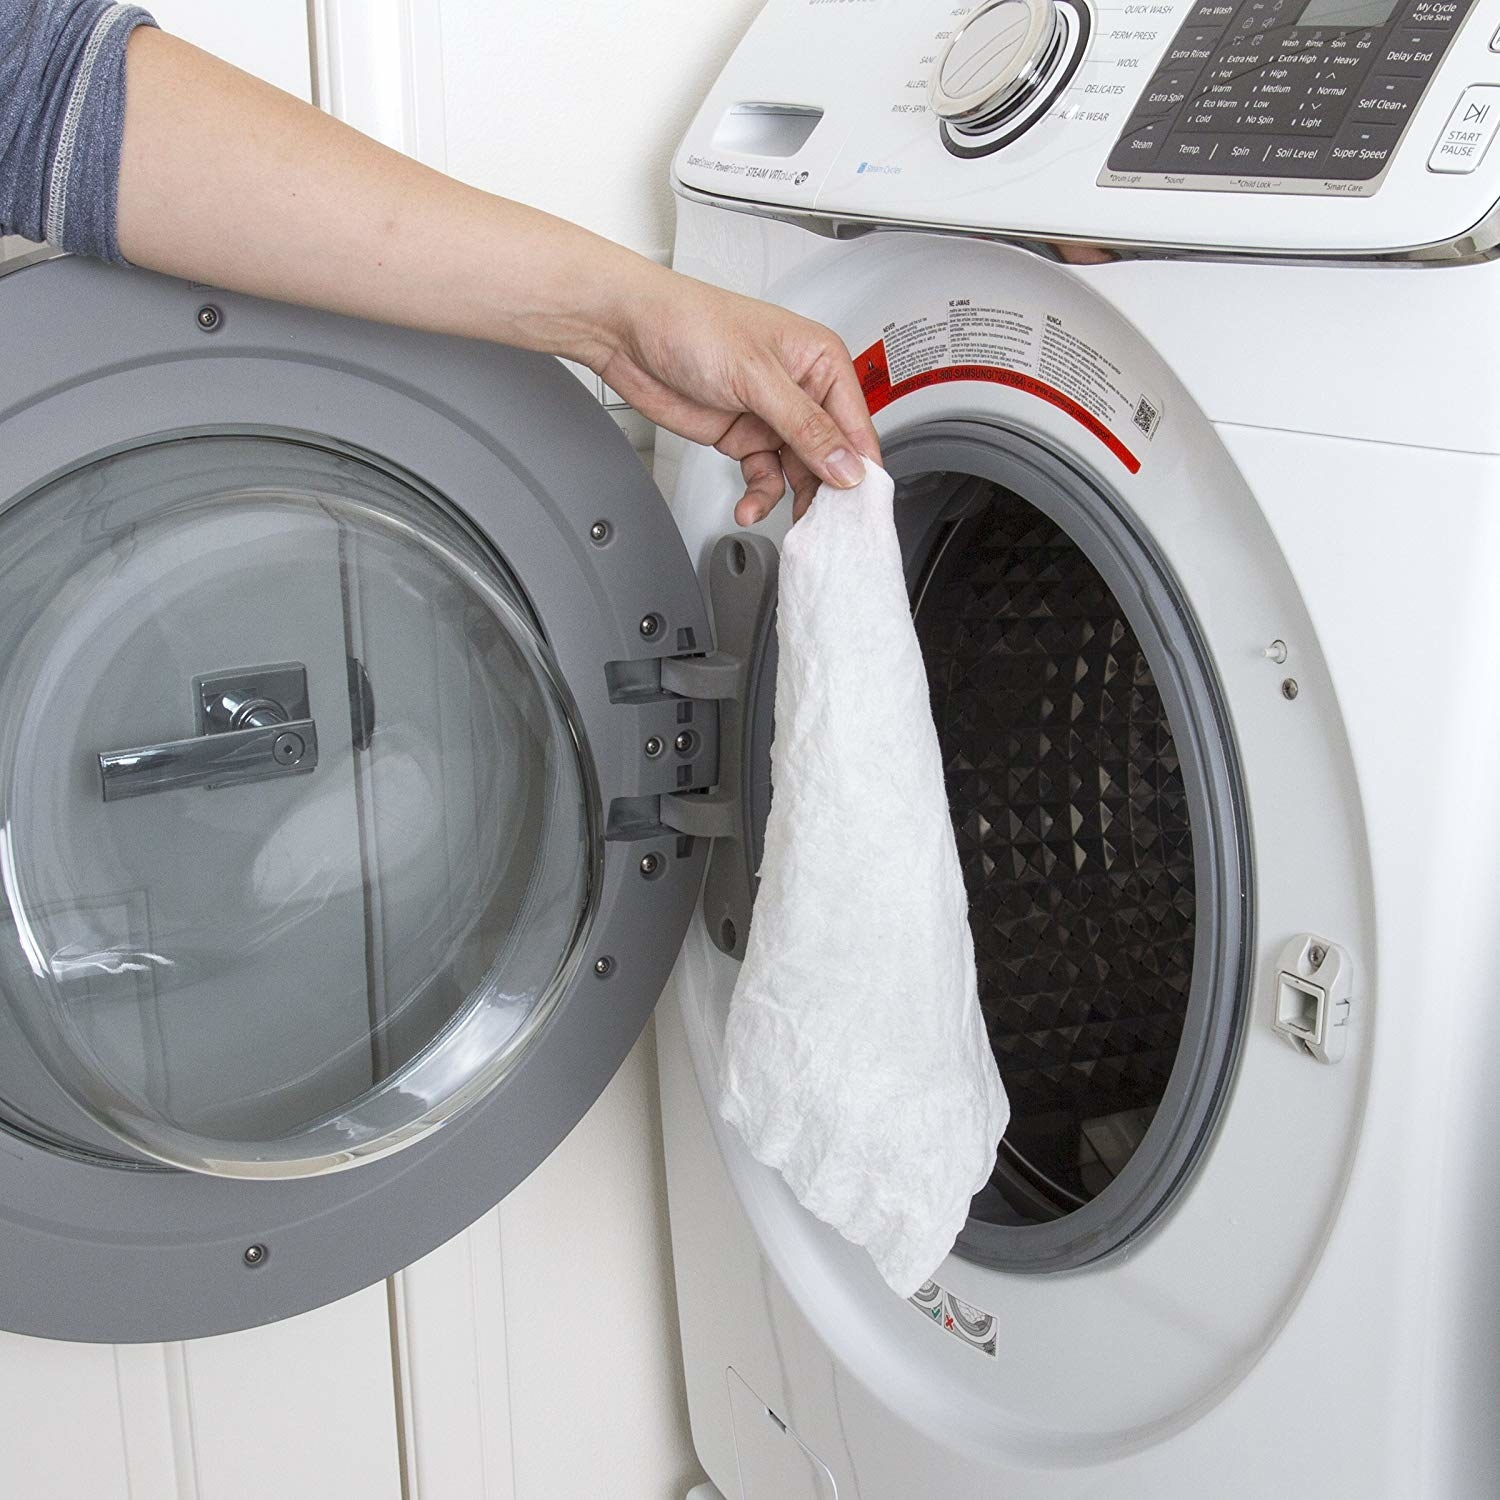 A person putting a wipe in the washing machine